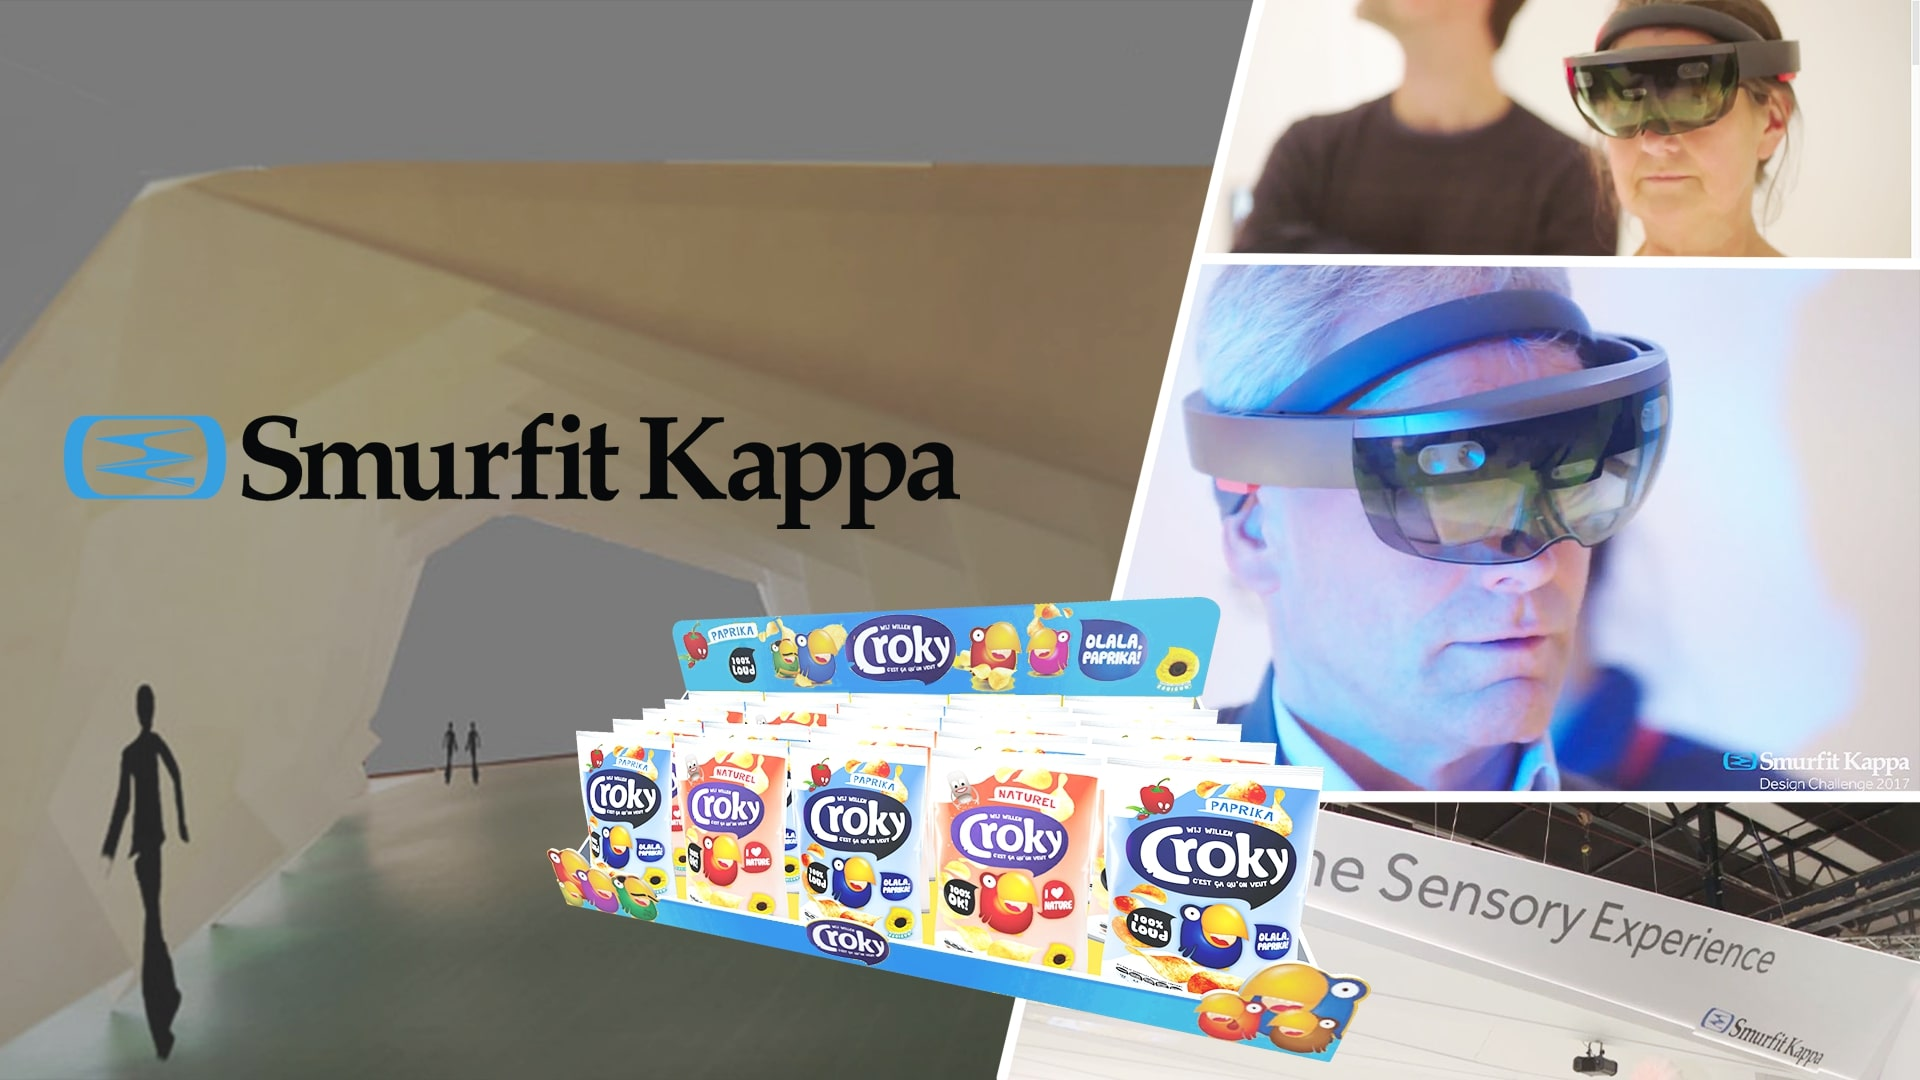 augmented reality cases (Smurfit Kappa light)